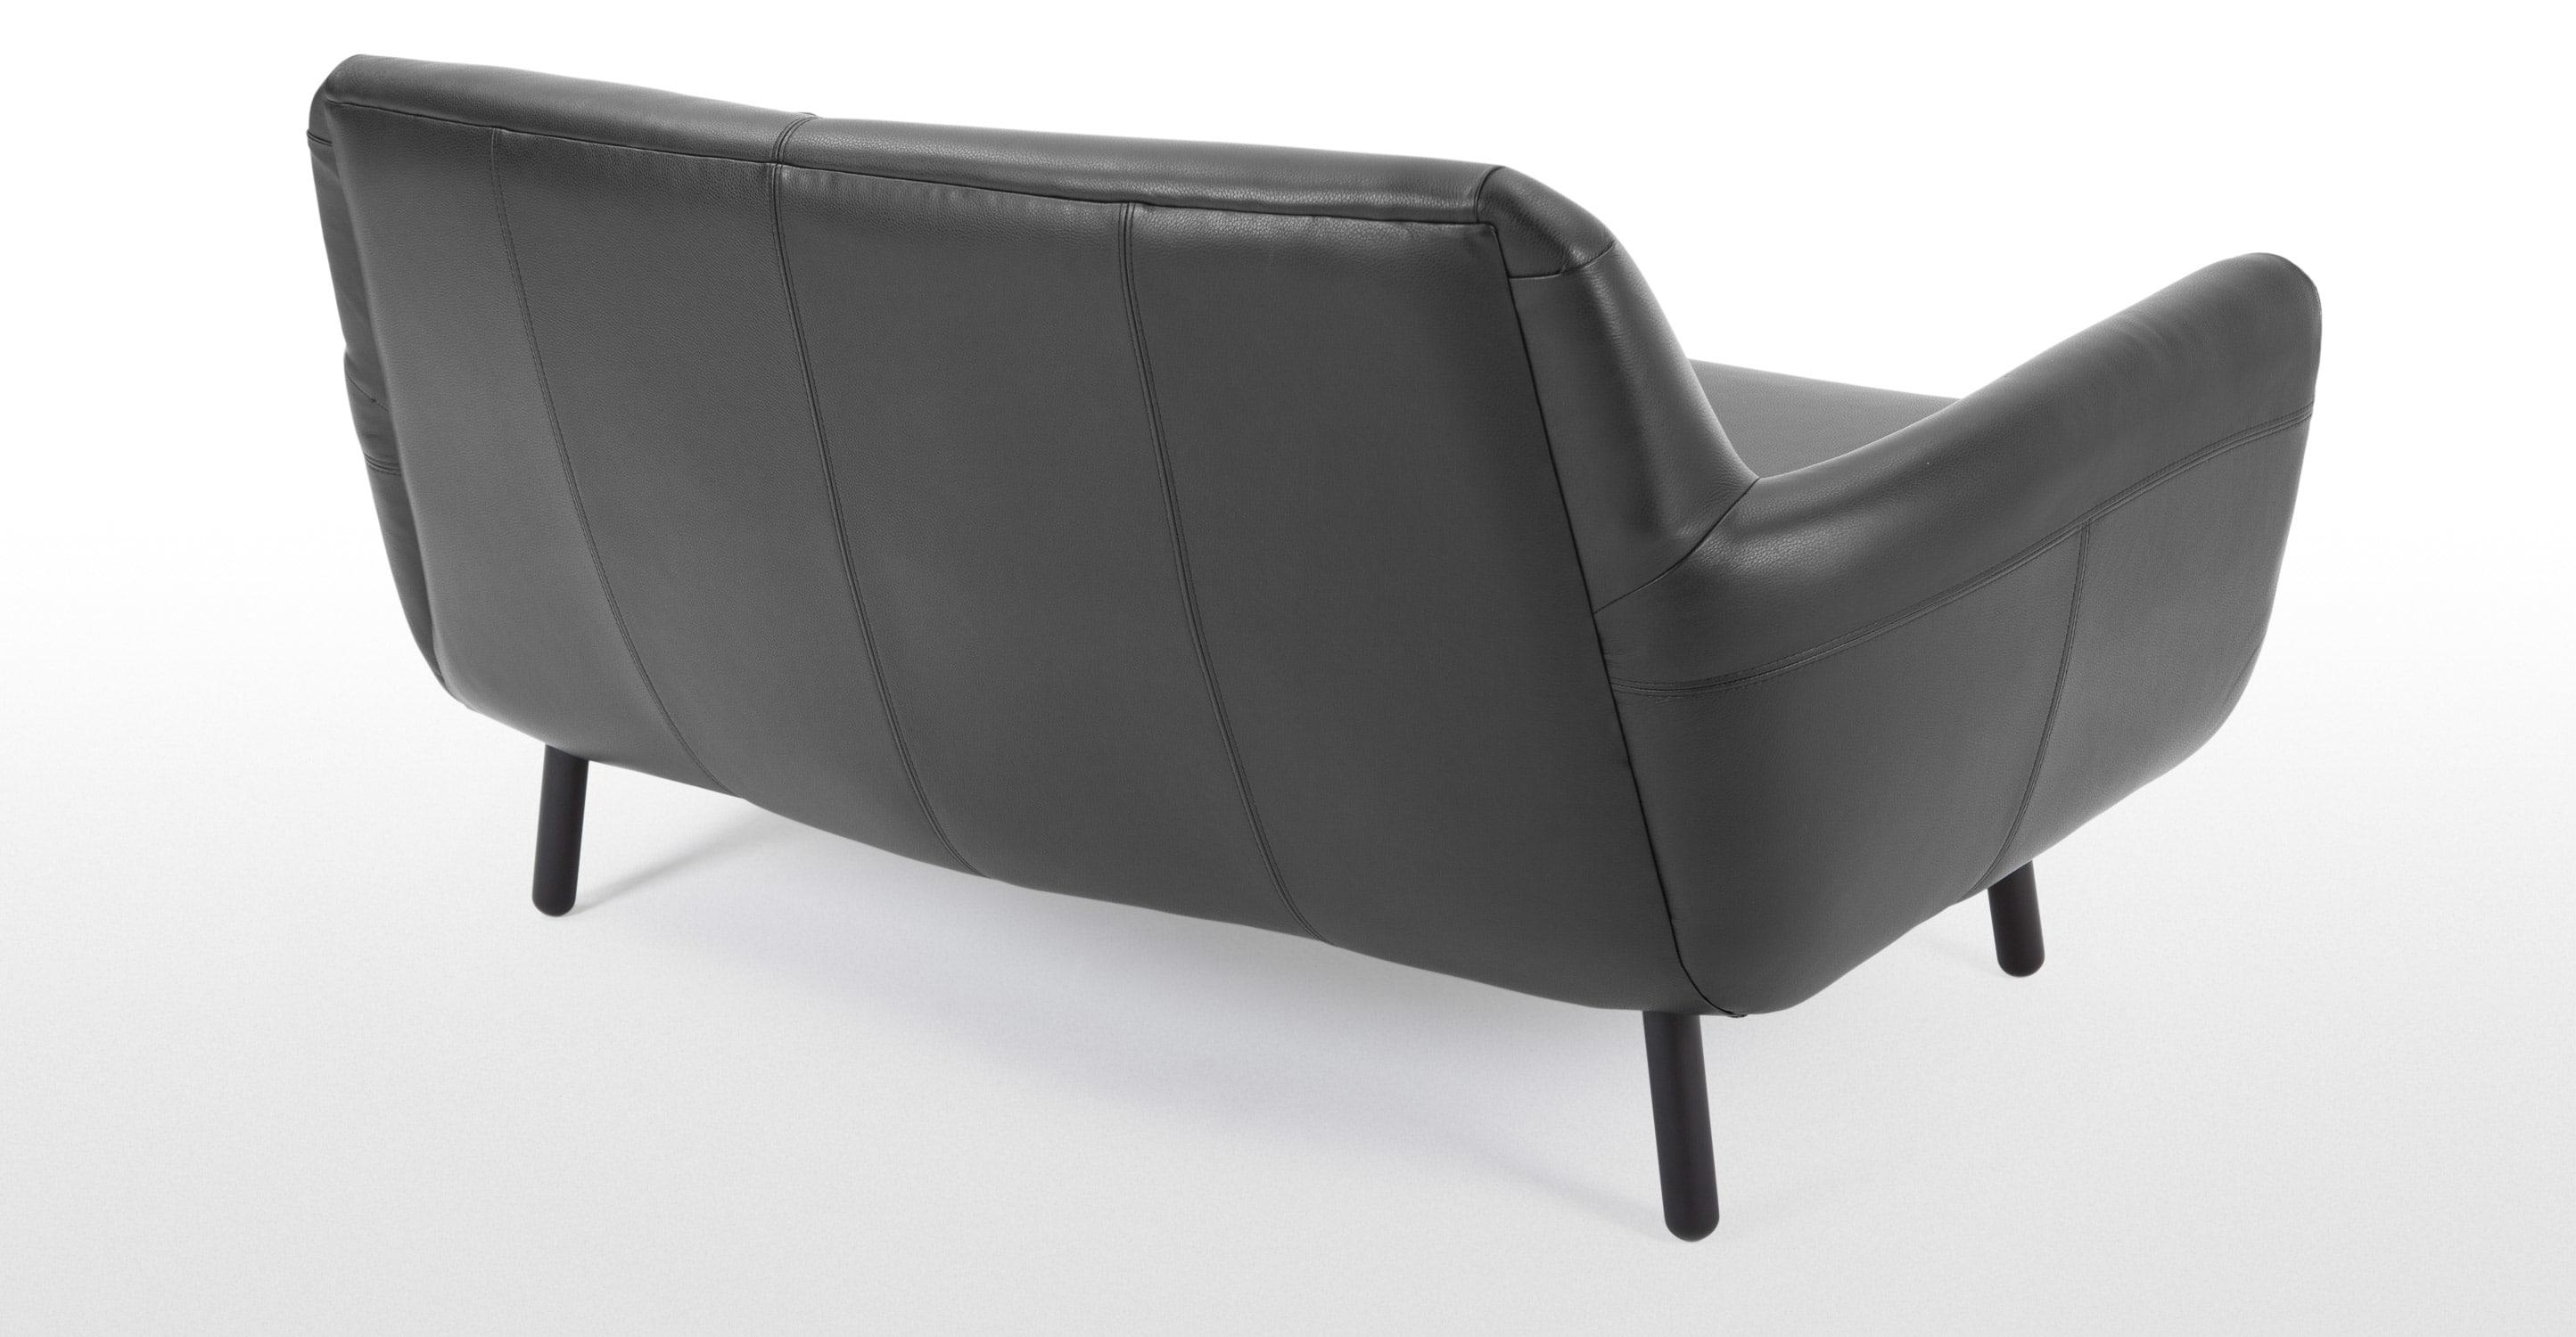 Jonah 2 Seater Sofa In Liquorice Black Premium Leather | Made In Black 2 Seater Sofas (View 17 of 20)